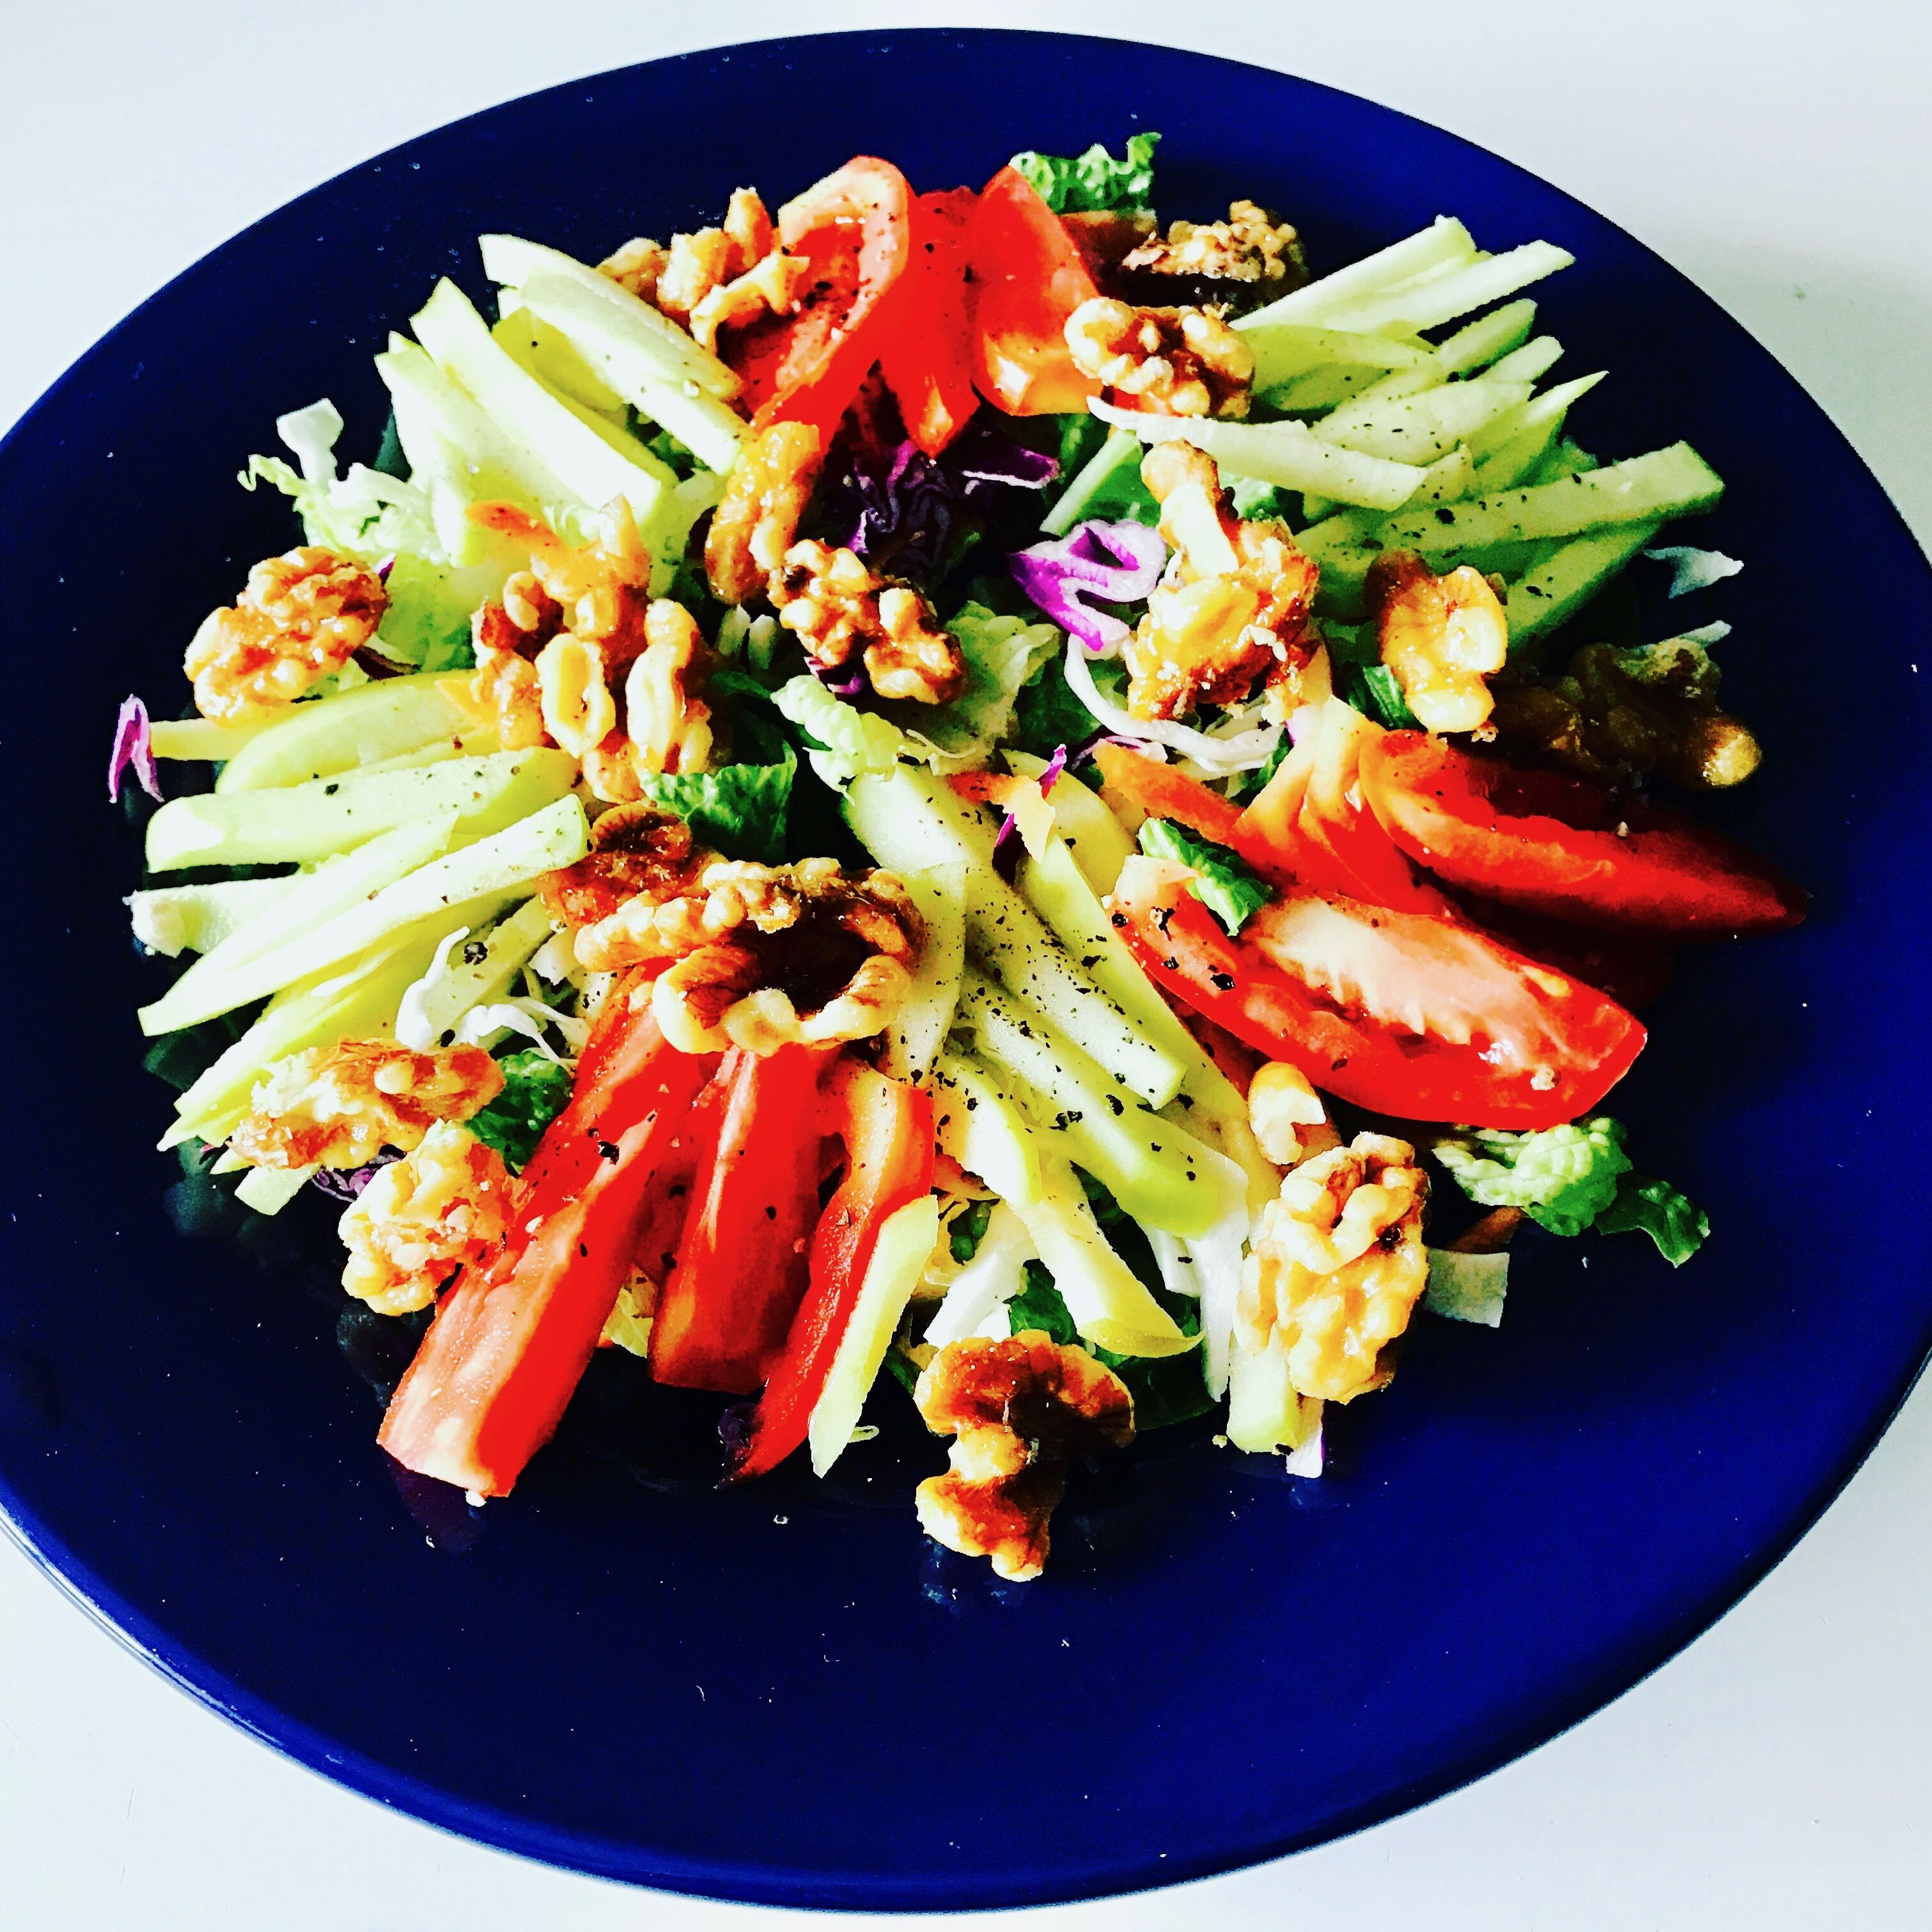 Pin By Sherry Wilhite On Healthy Juice And Salads